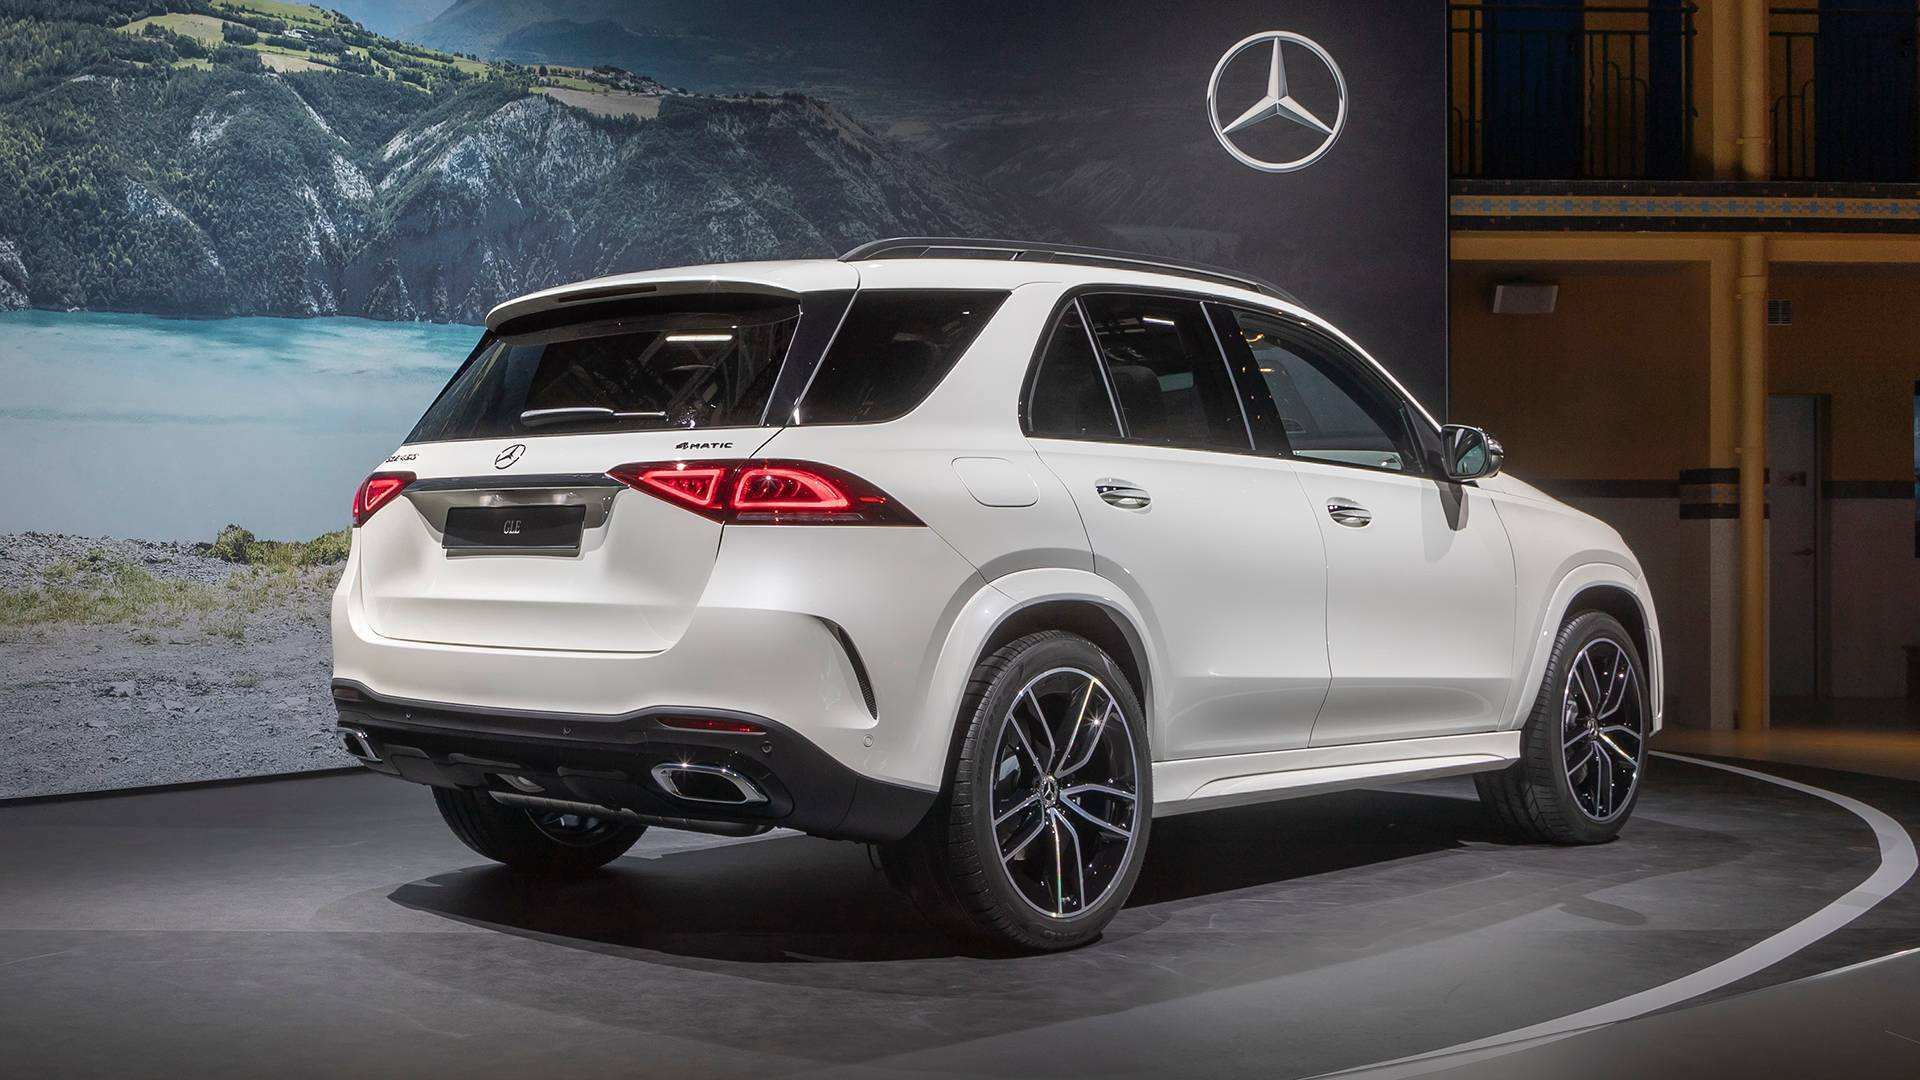 49 The 2020 Mercedes GLE Exterior for 2020 Mercedes GLE